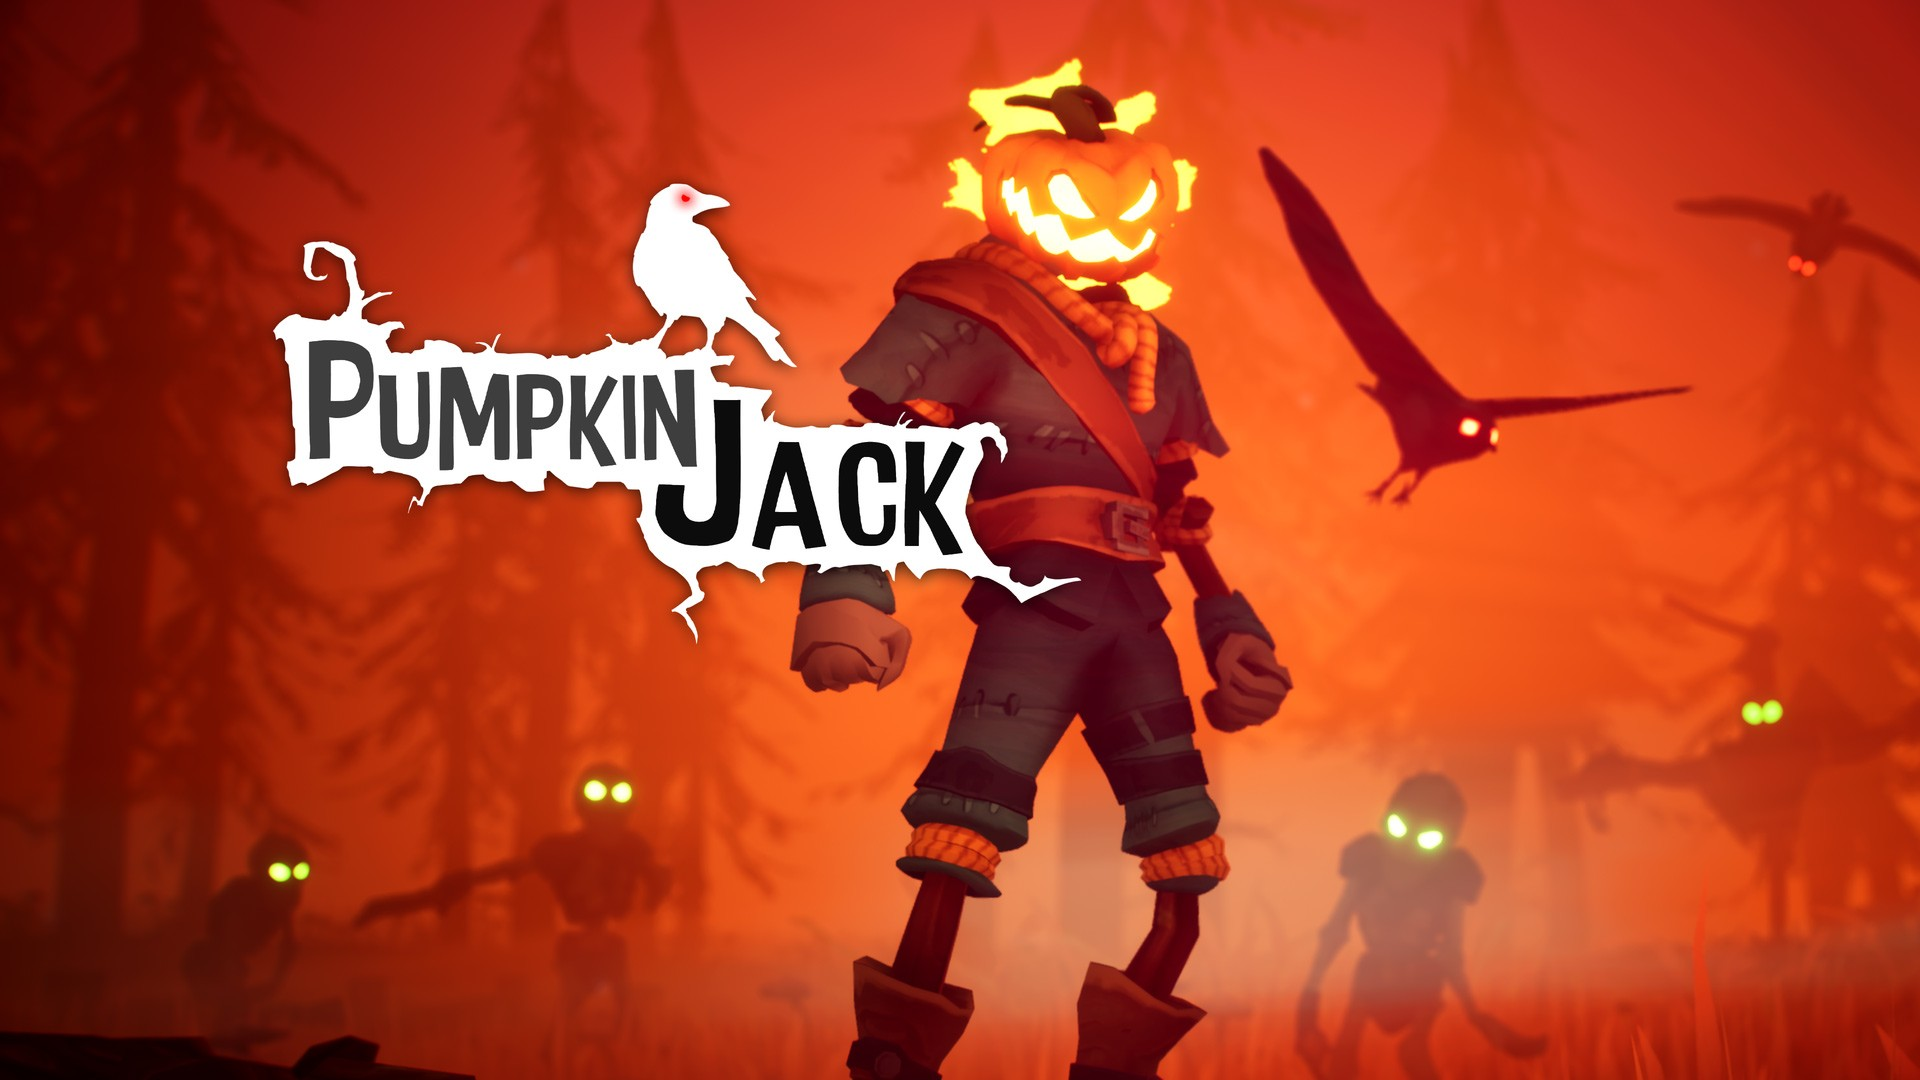 Video For A Walk Over the Pumpkin Patch: How Pumpkin Jack the Game Came About